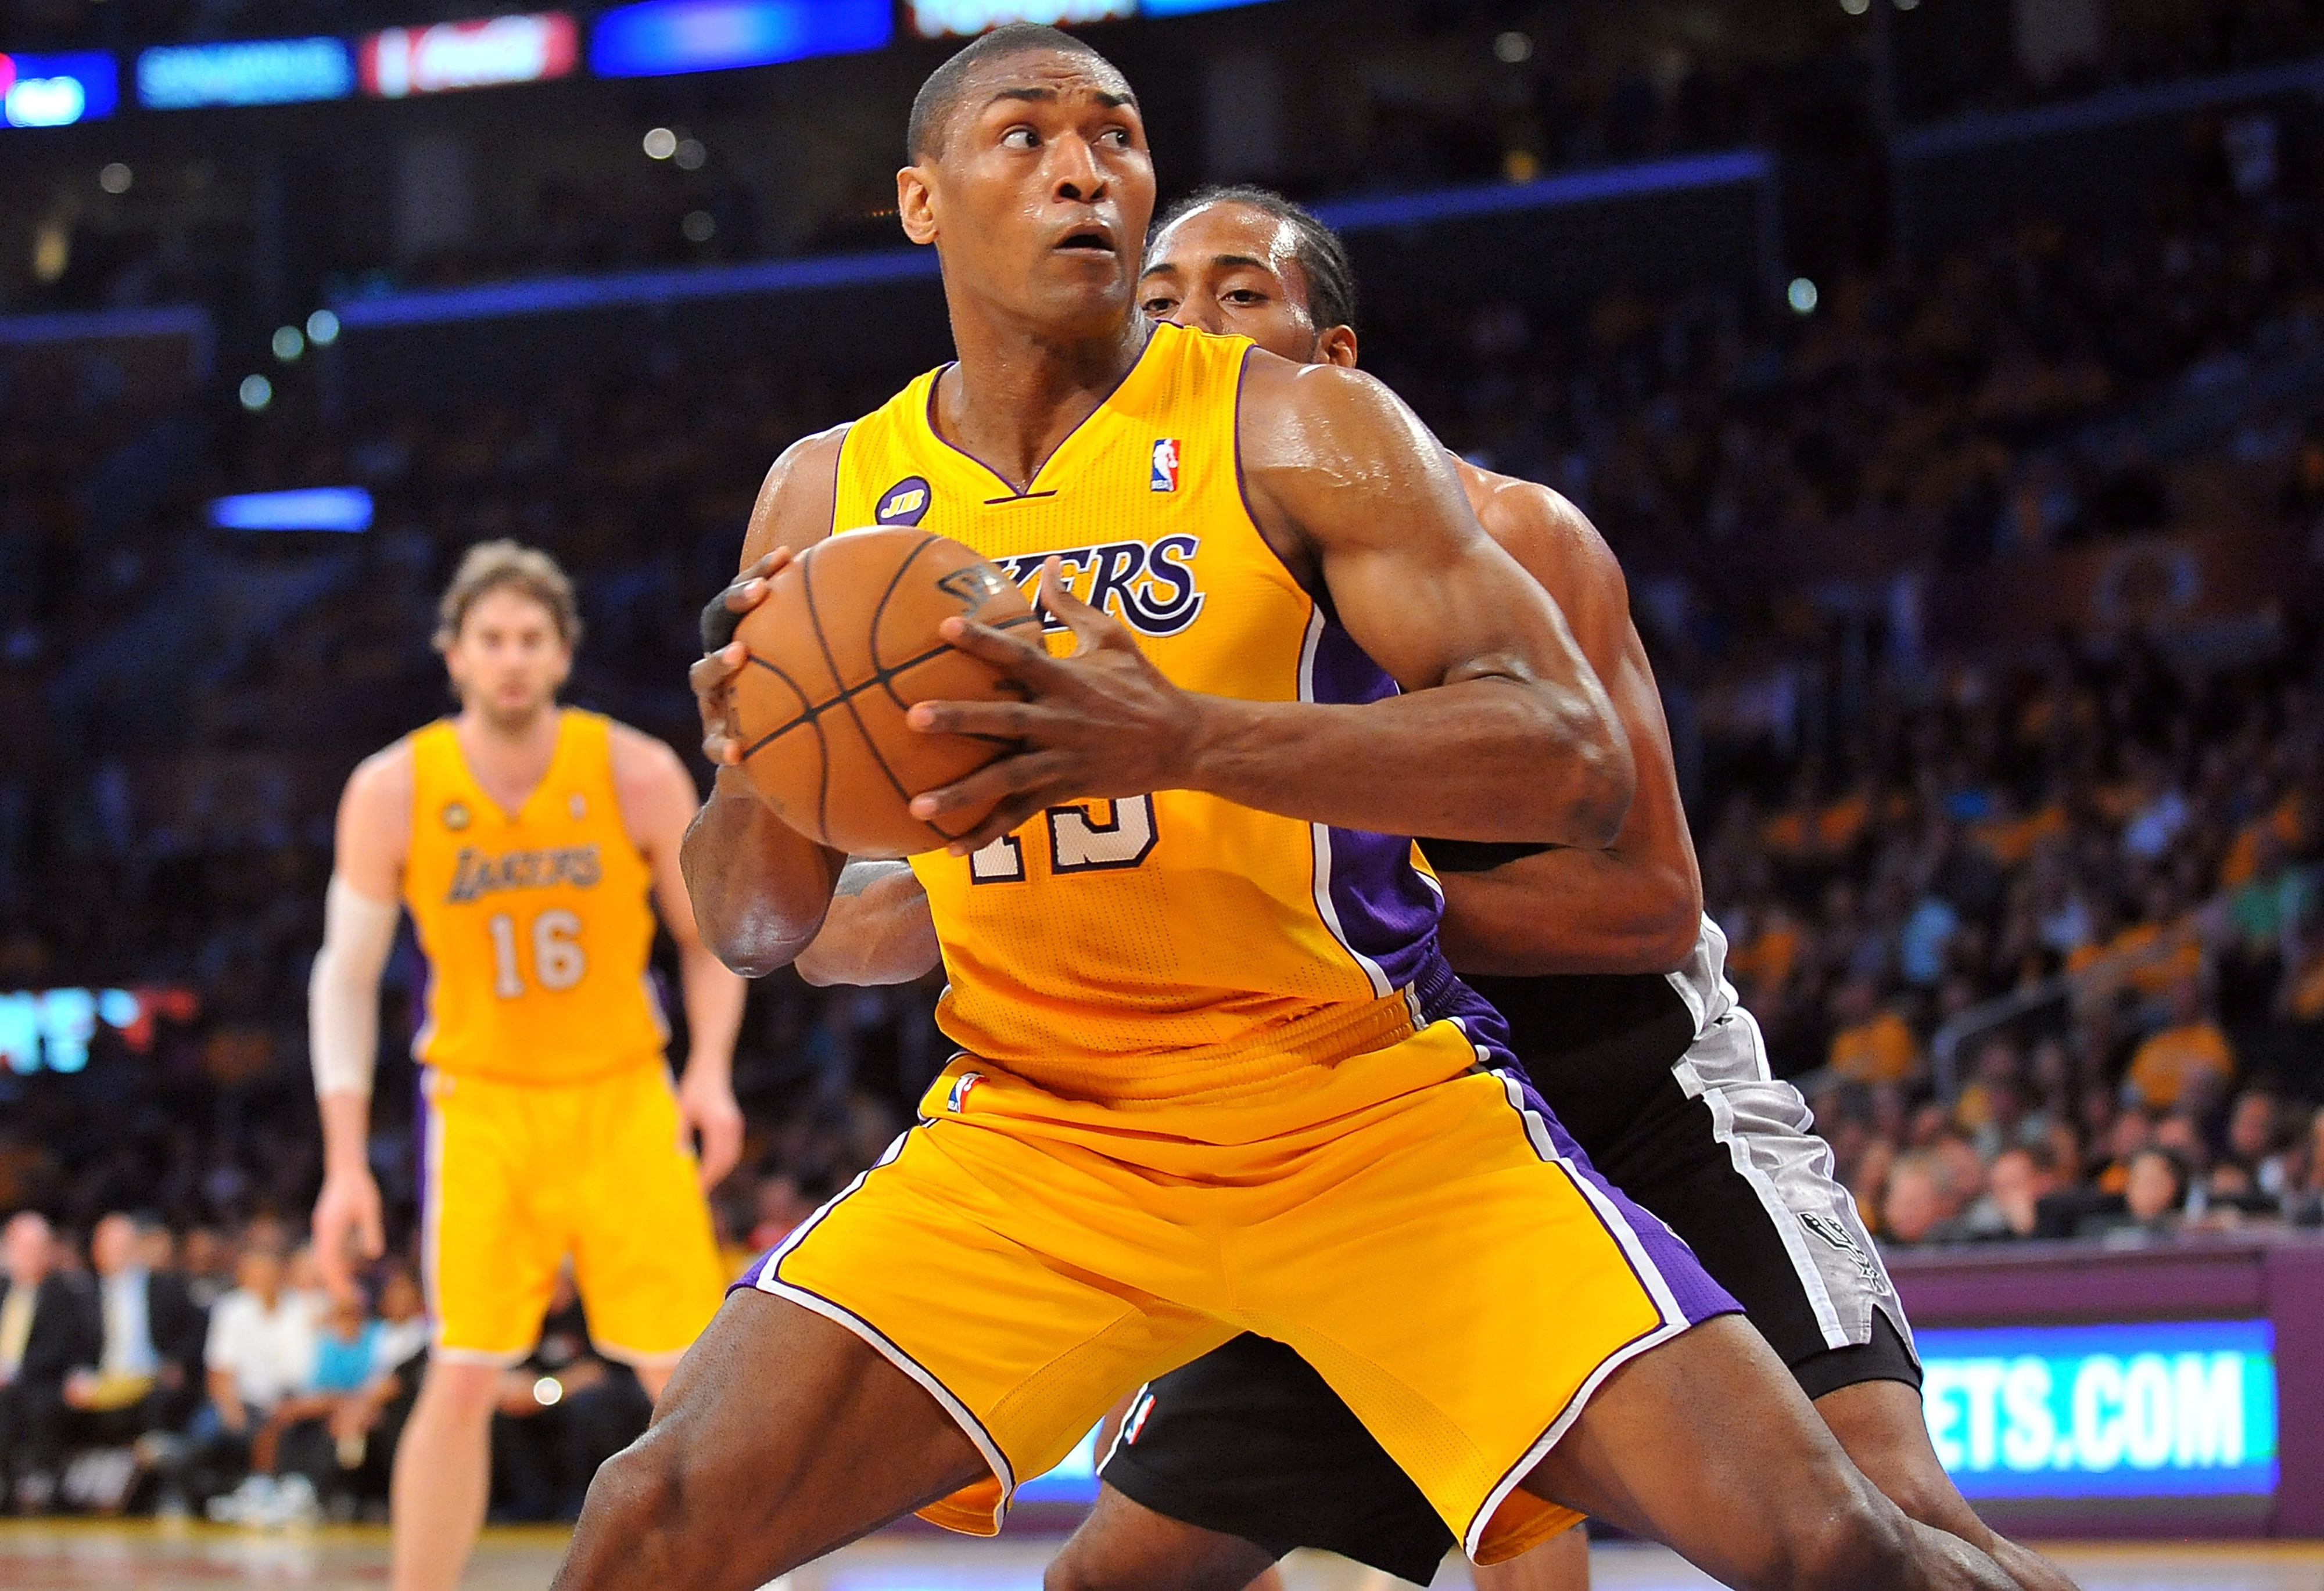 Lakers to amnesty Metta World Peace, according to report